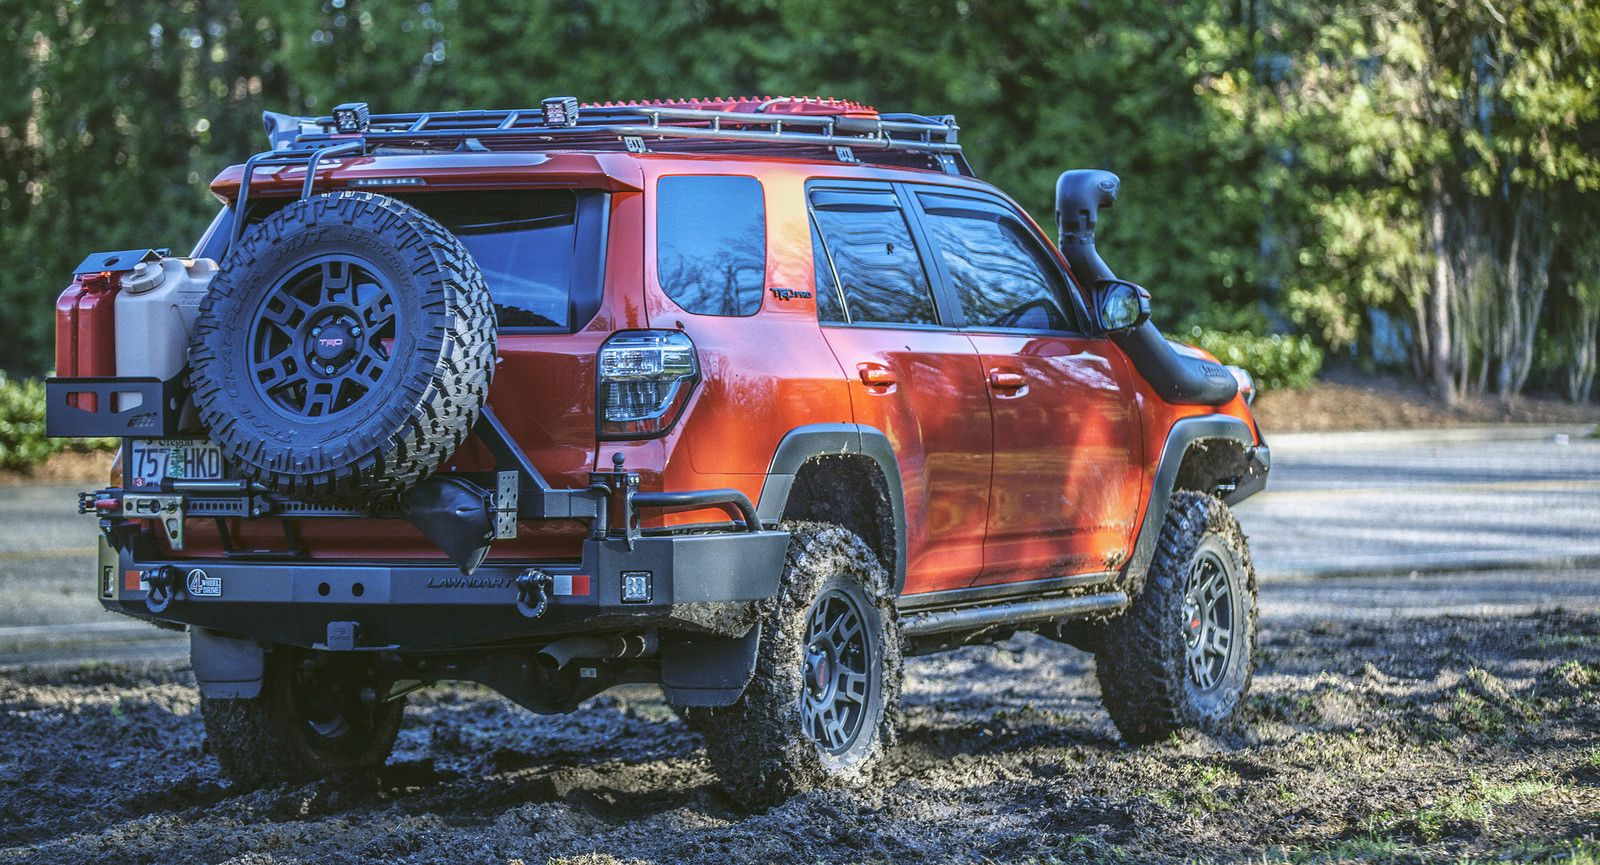 2017 4runner trd pro page 2 toyota 4runner forum largest 4runner - 5th Gen T4r Picture Gallery Page 336 Toyota 4runner Forum Largest 4runner Forum